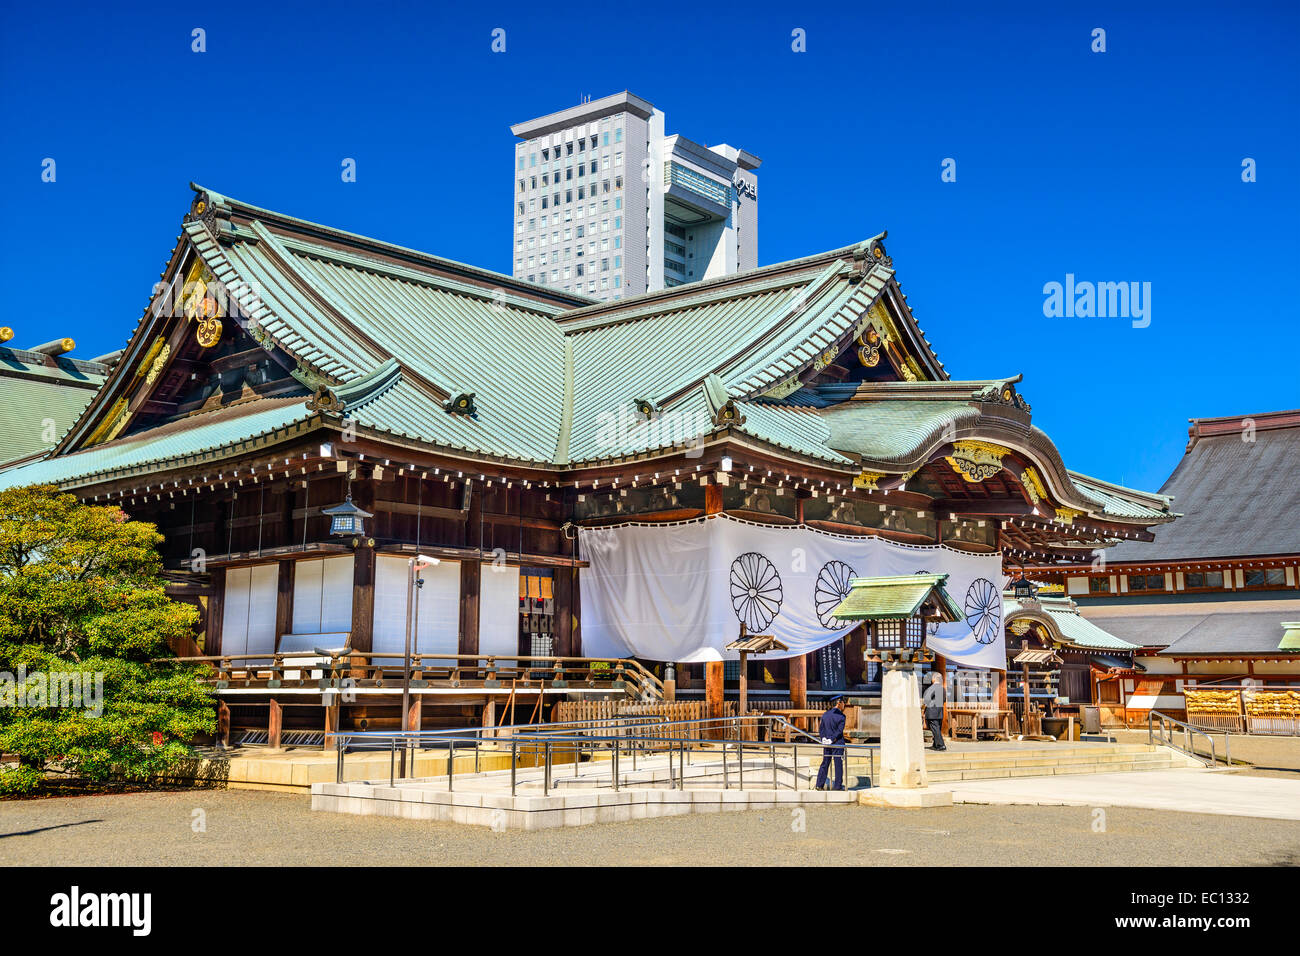 Guards and tourists at Yasukuni Shrine. The shrine is one of the most controversial in Japan. - Stock Image